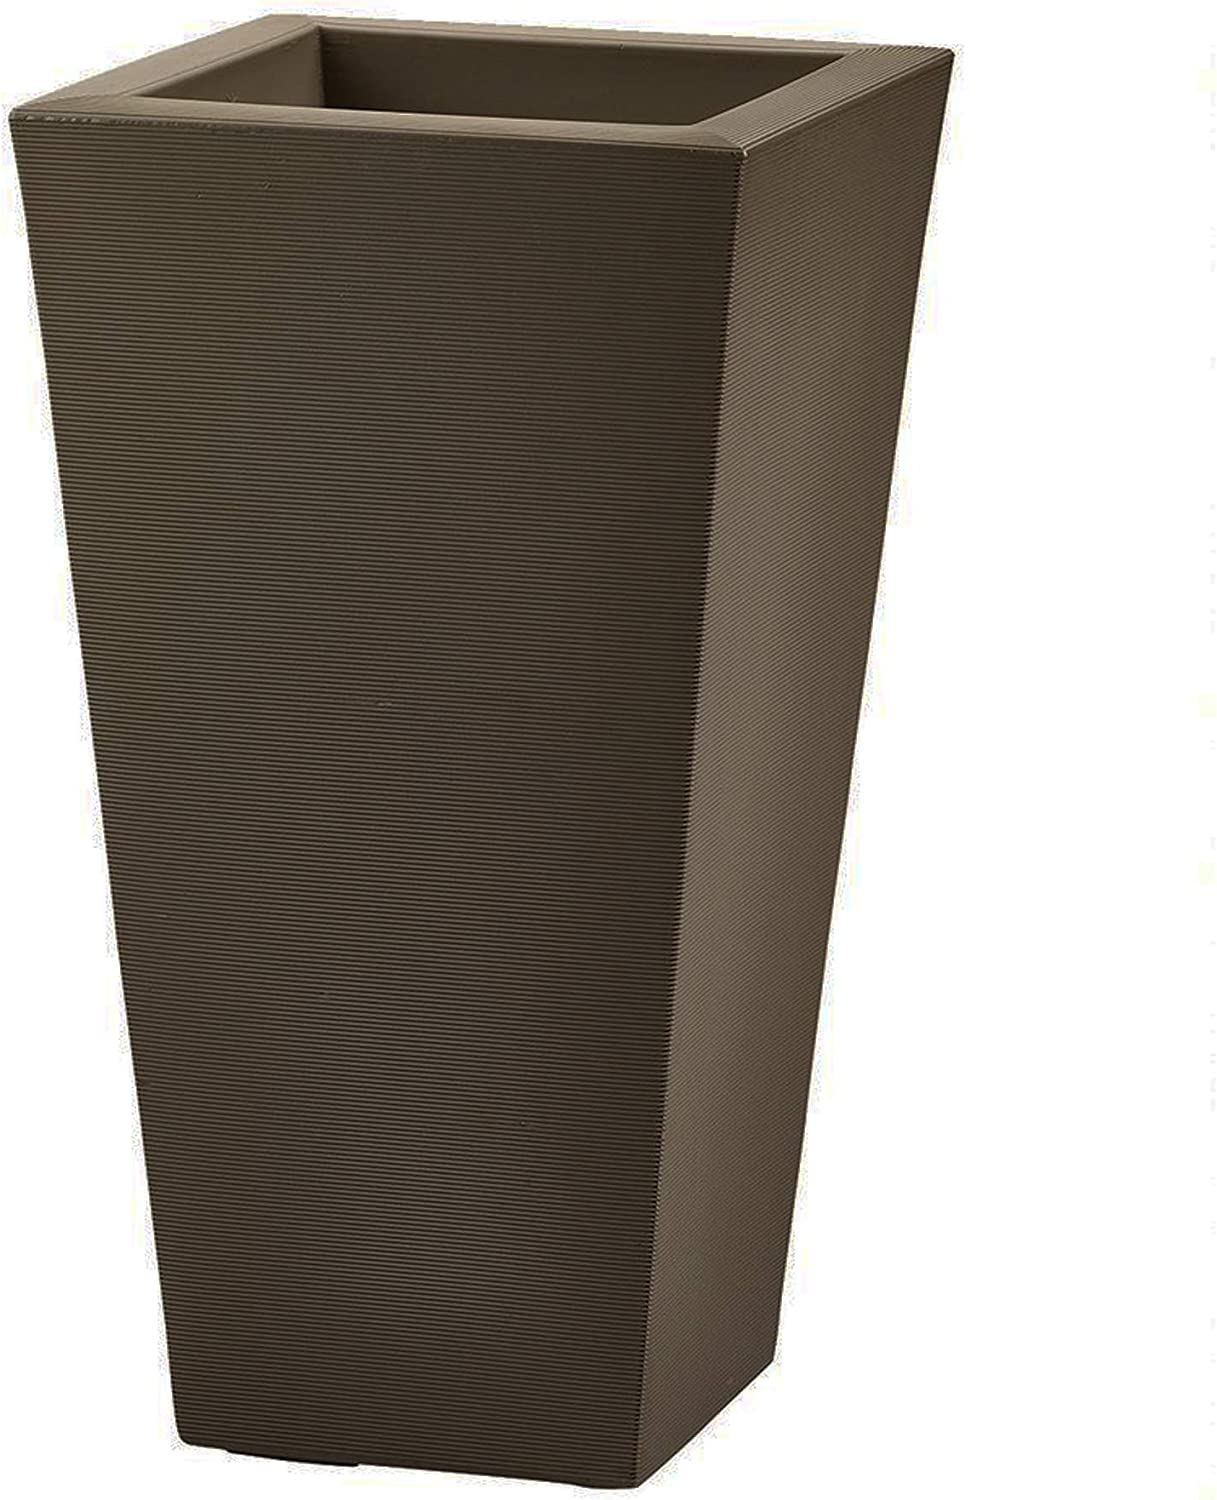 Crescent Garden Bowery Planter, Tall Double-Walled Plant Pot, 17-Inch (Mocha)